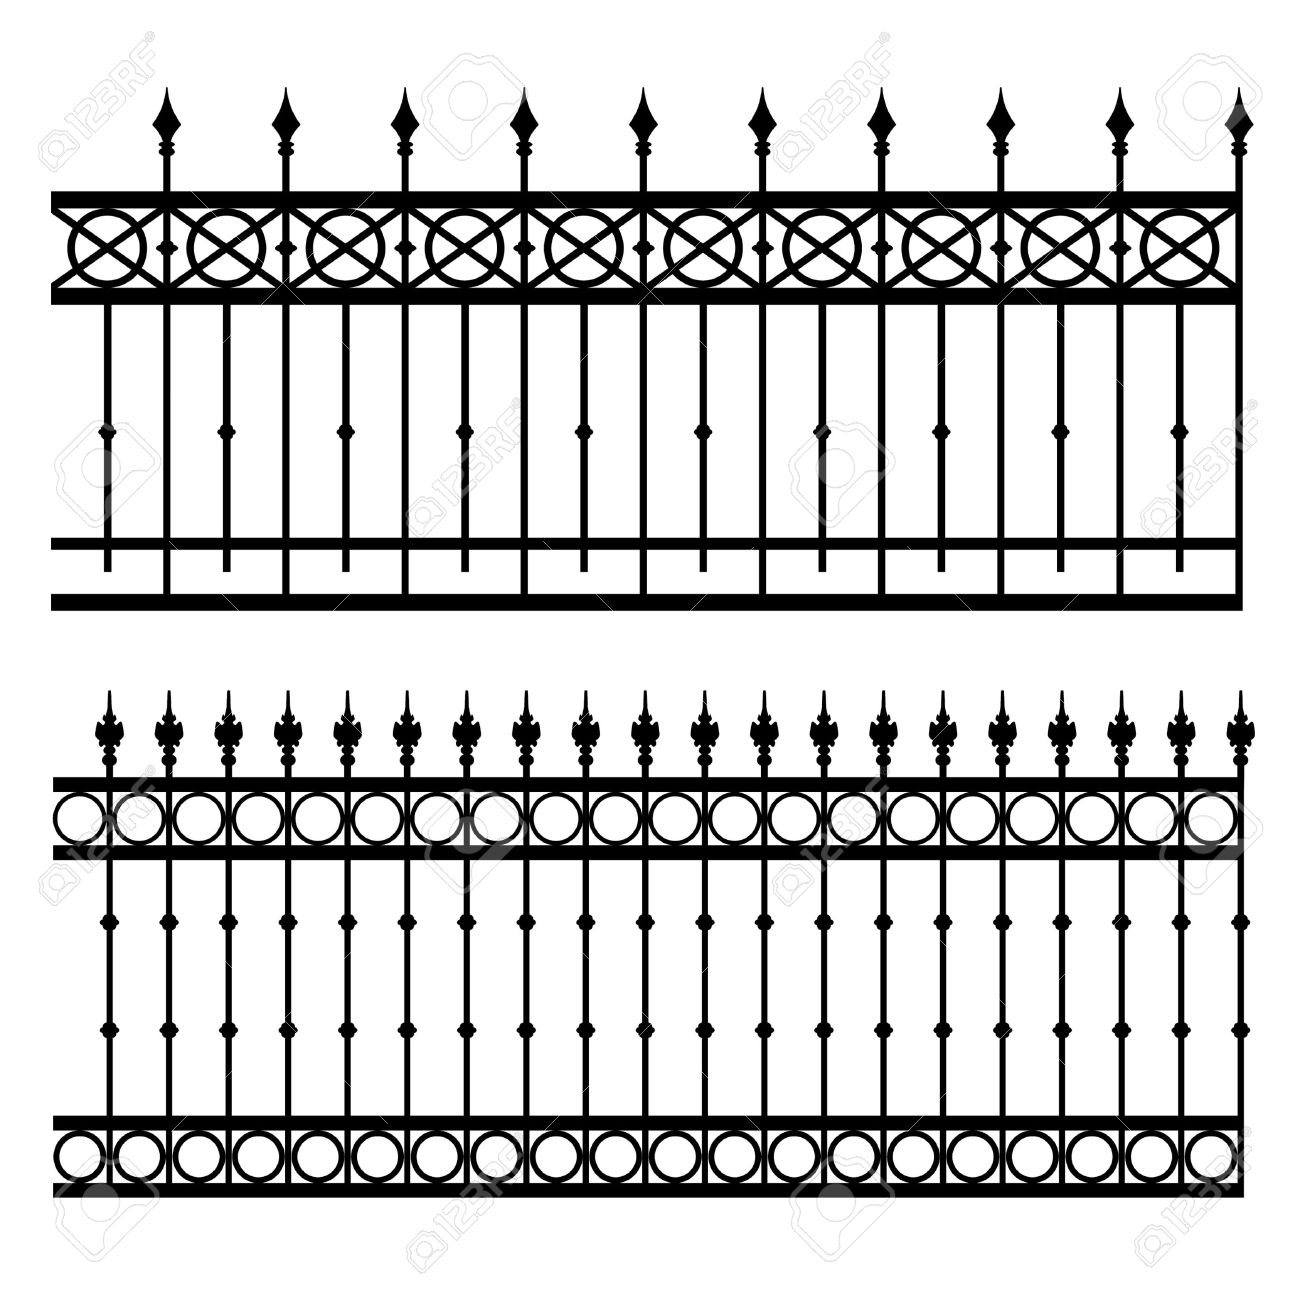 Gate clipart gothic Image 17513848 jpg 1300 Image